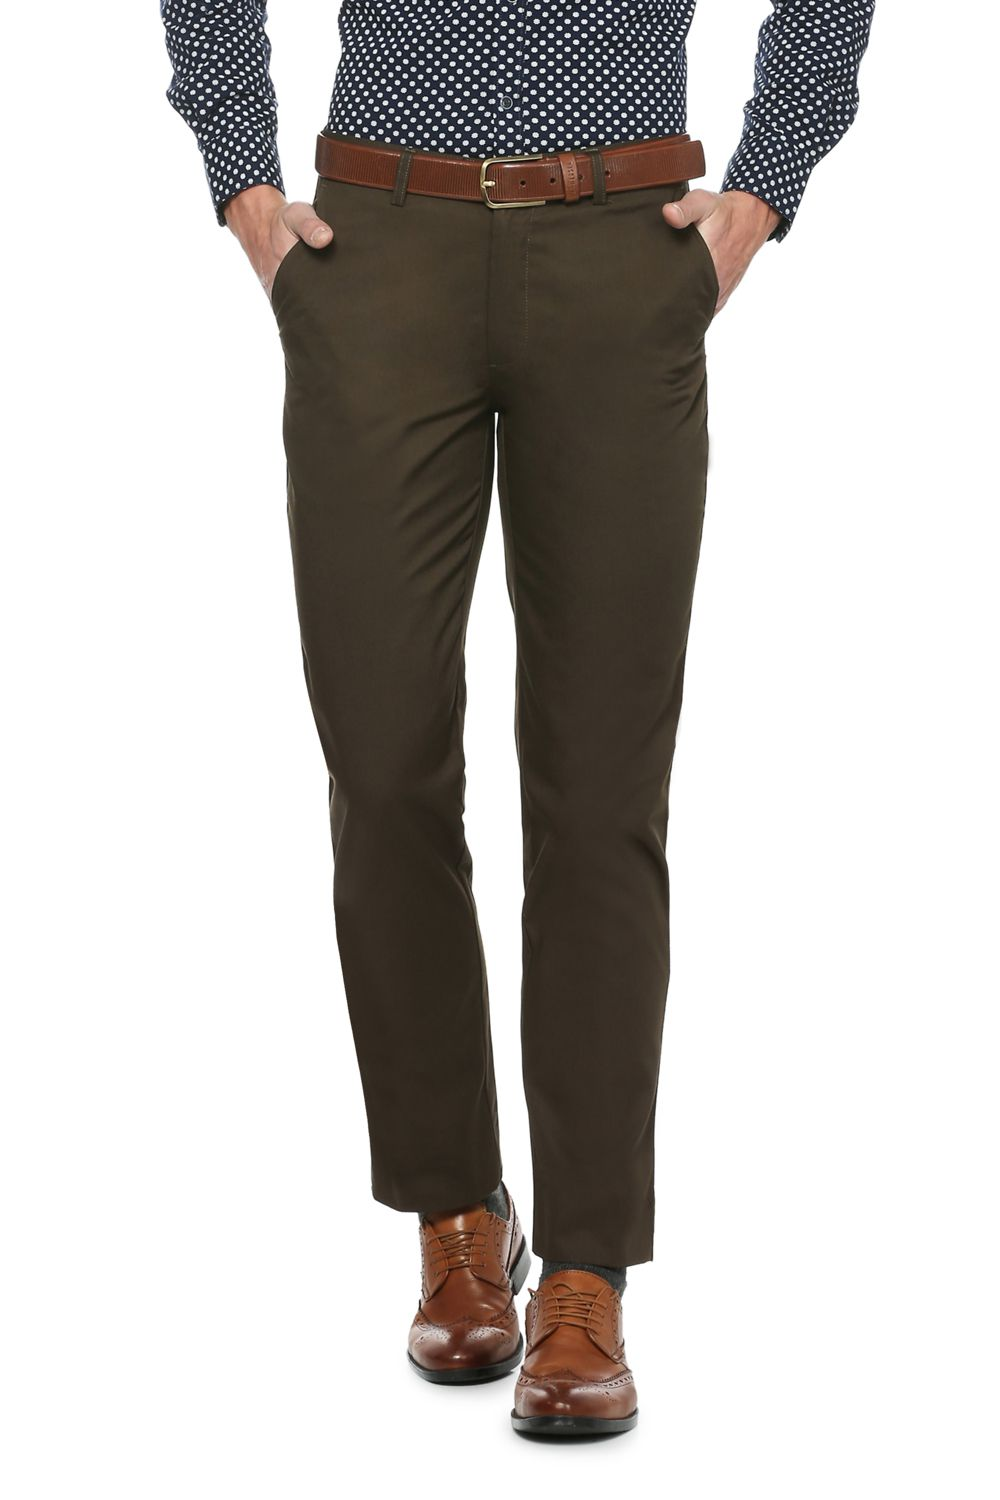 Peter England Brown Slim -Fit Flat Trousers